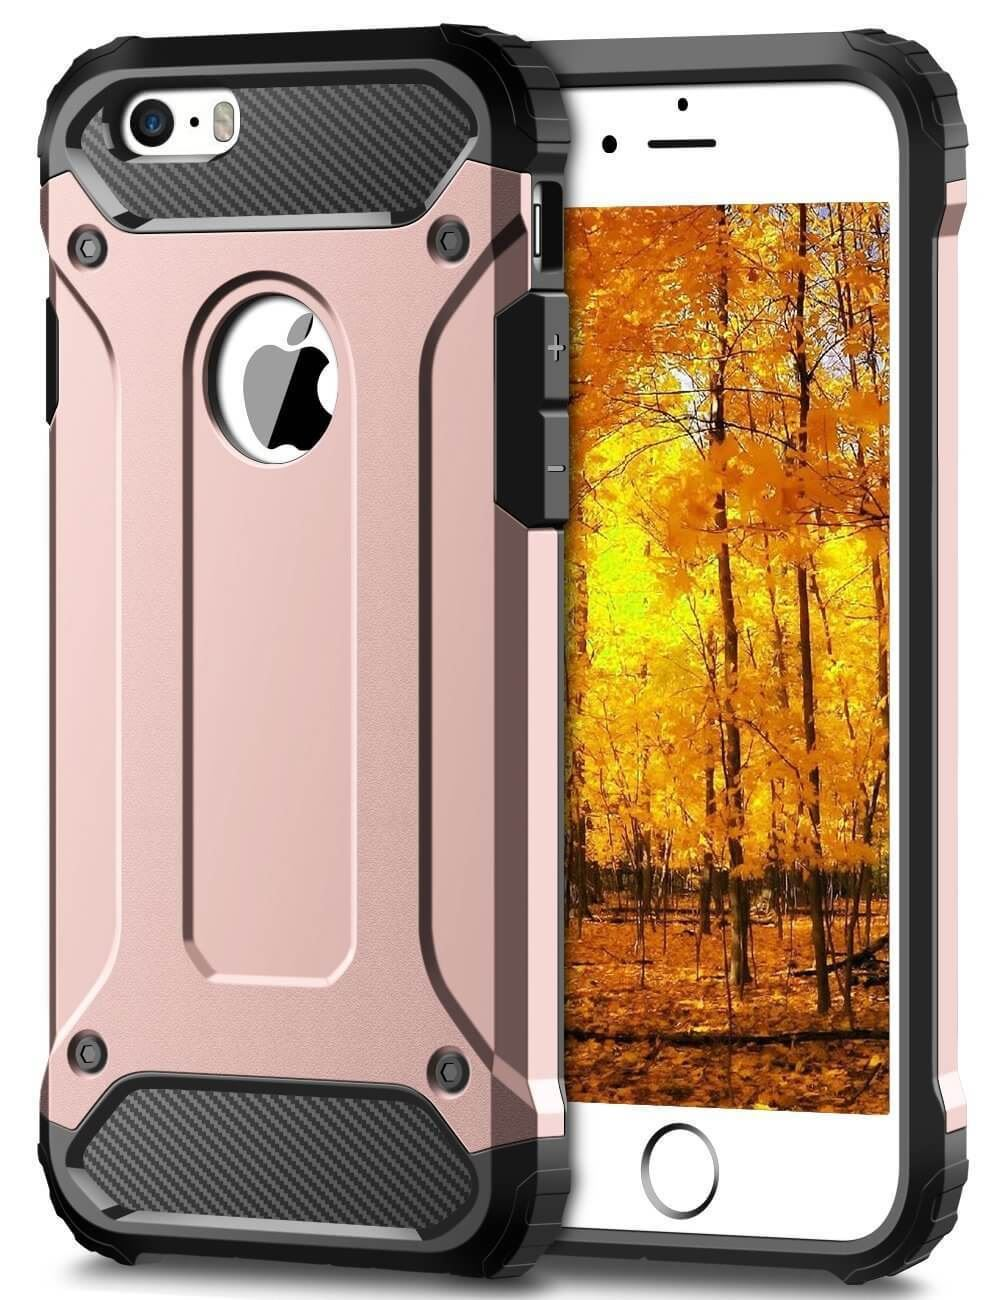 Hybrid-Armor-antiurto-Robusta-Custodia-Paraurti-Per-Apple-iPhone-10-x-8-7-PLUS-6-S-5-S